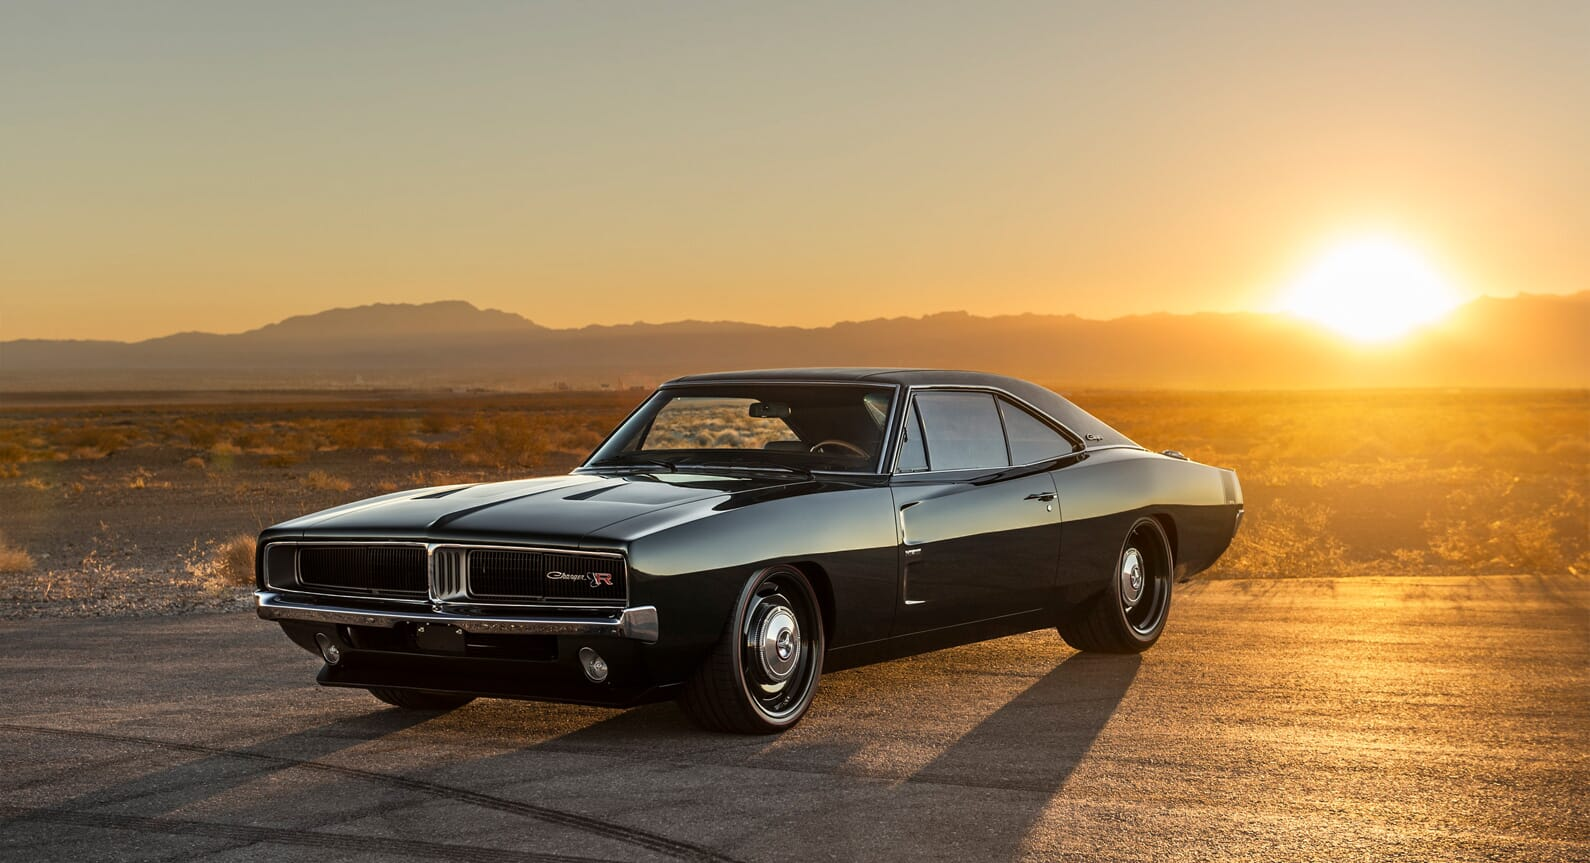 Why This 1969 Dodge Charger Is The Ultimate Muscle Car